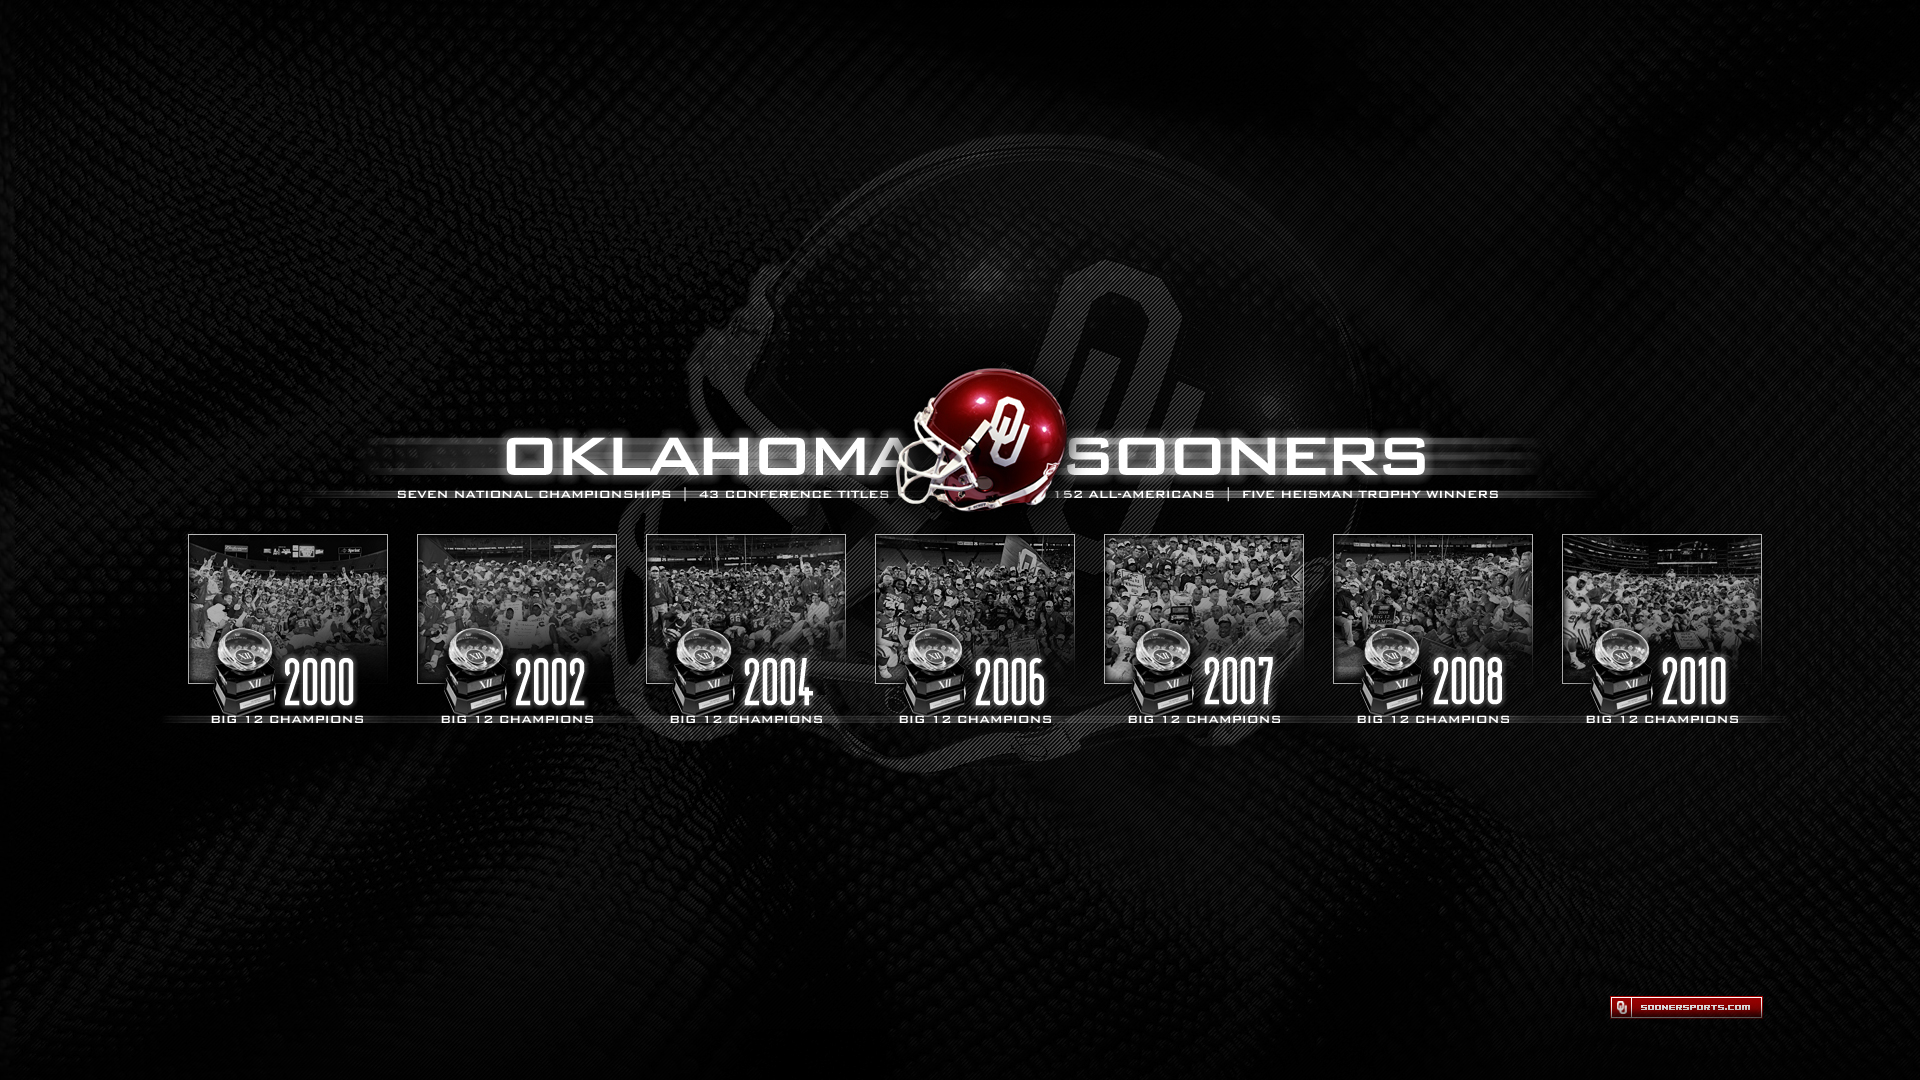 Oklahoma Sooners Screensaver wallpaper   278066 1920x1080